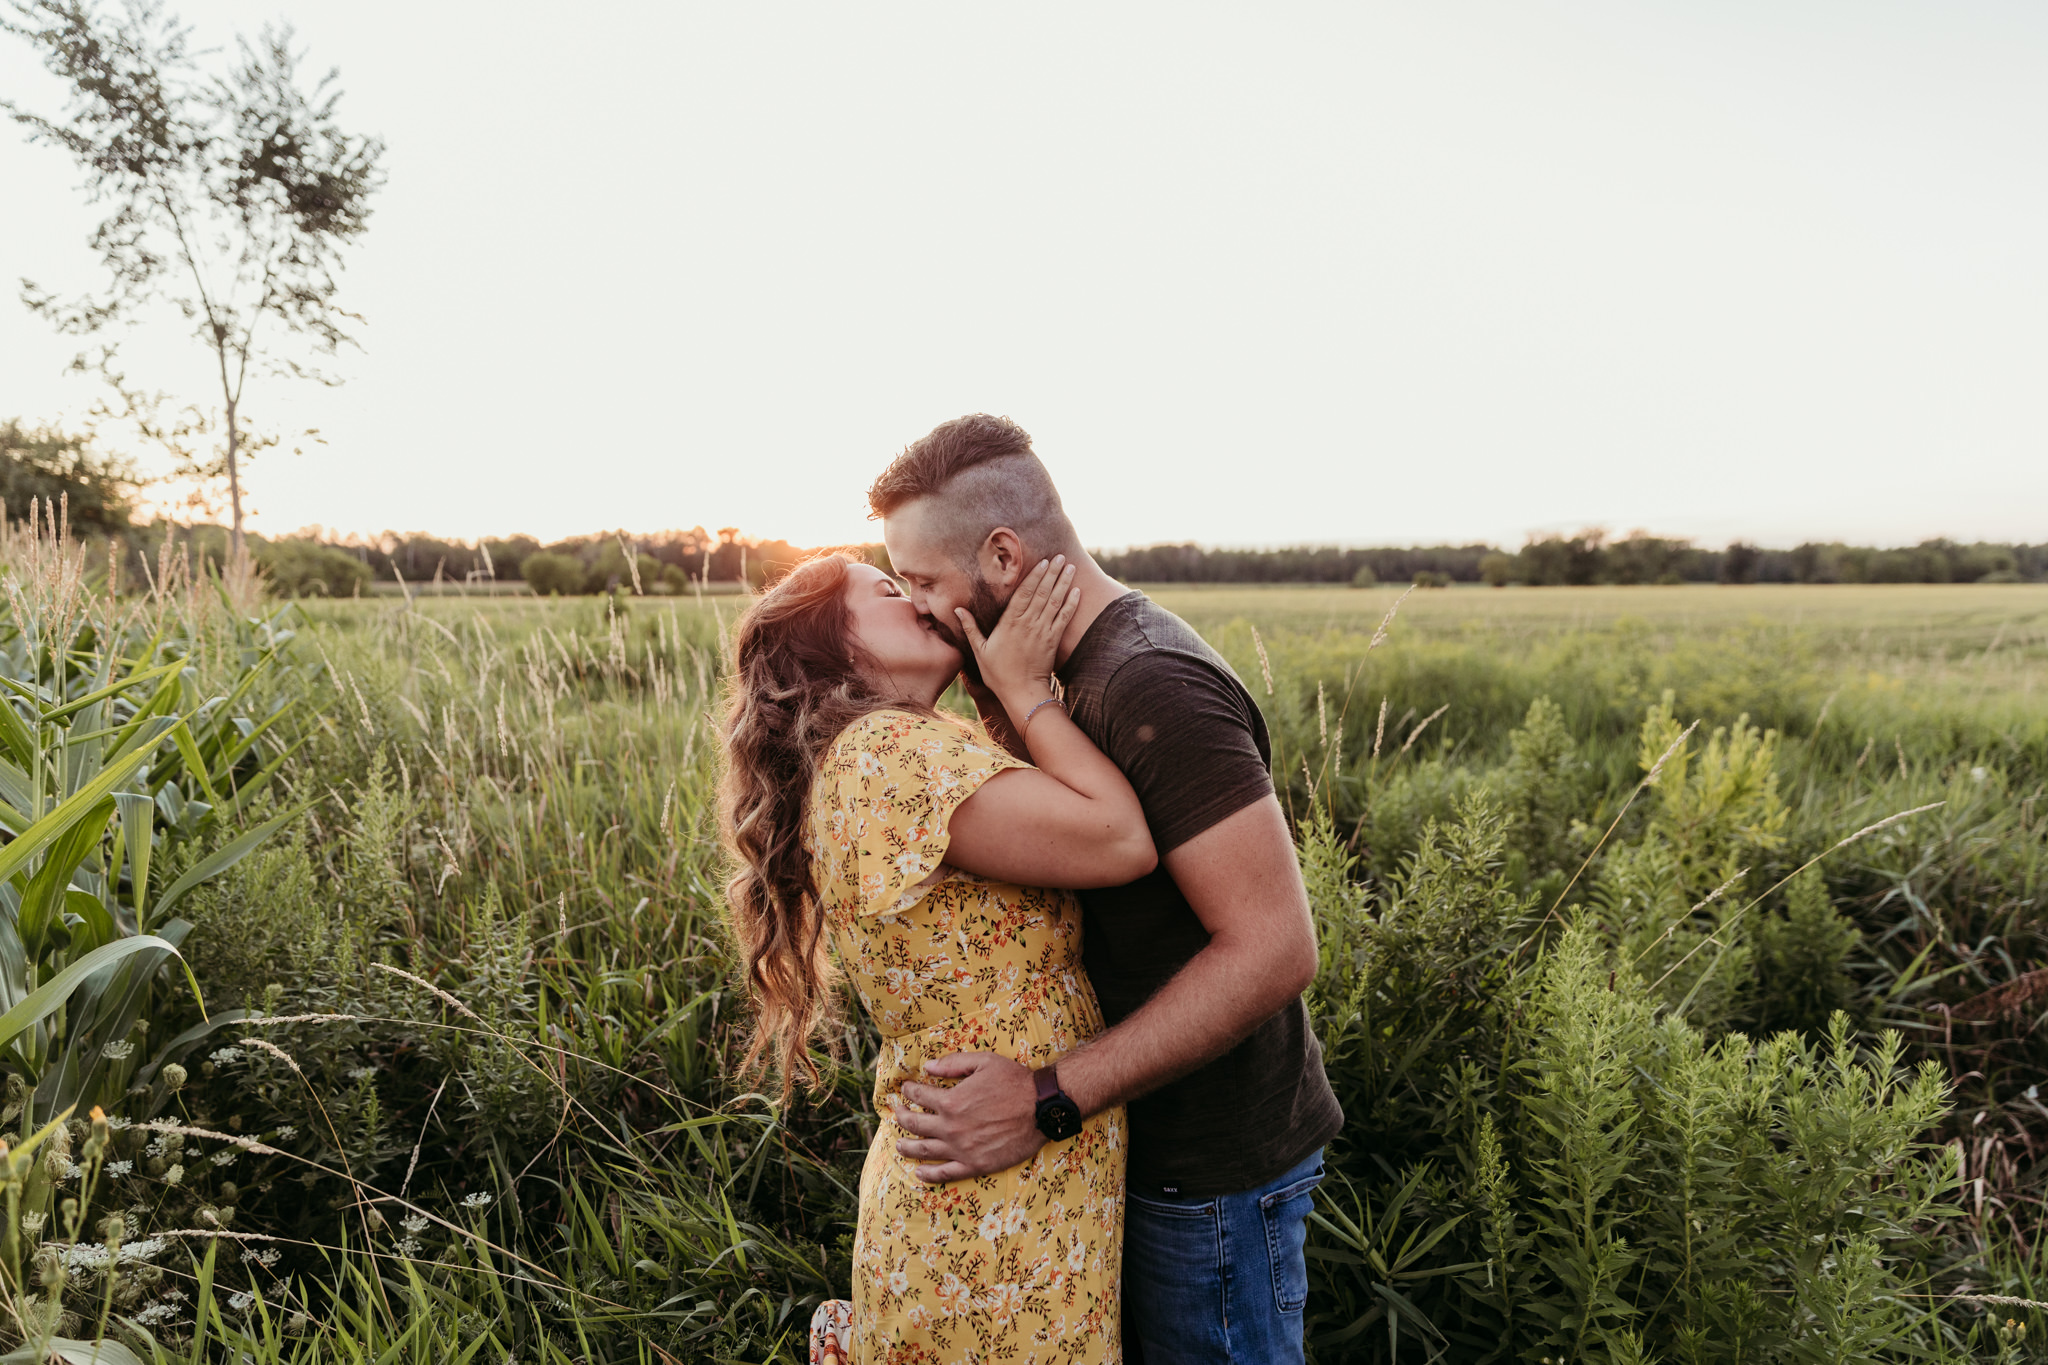 heterosexual couple kissing during sunset in a corn field